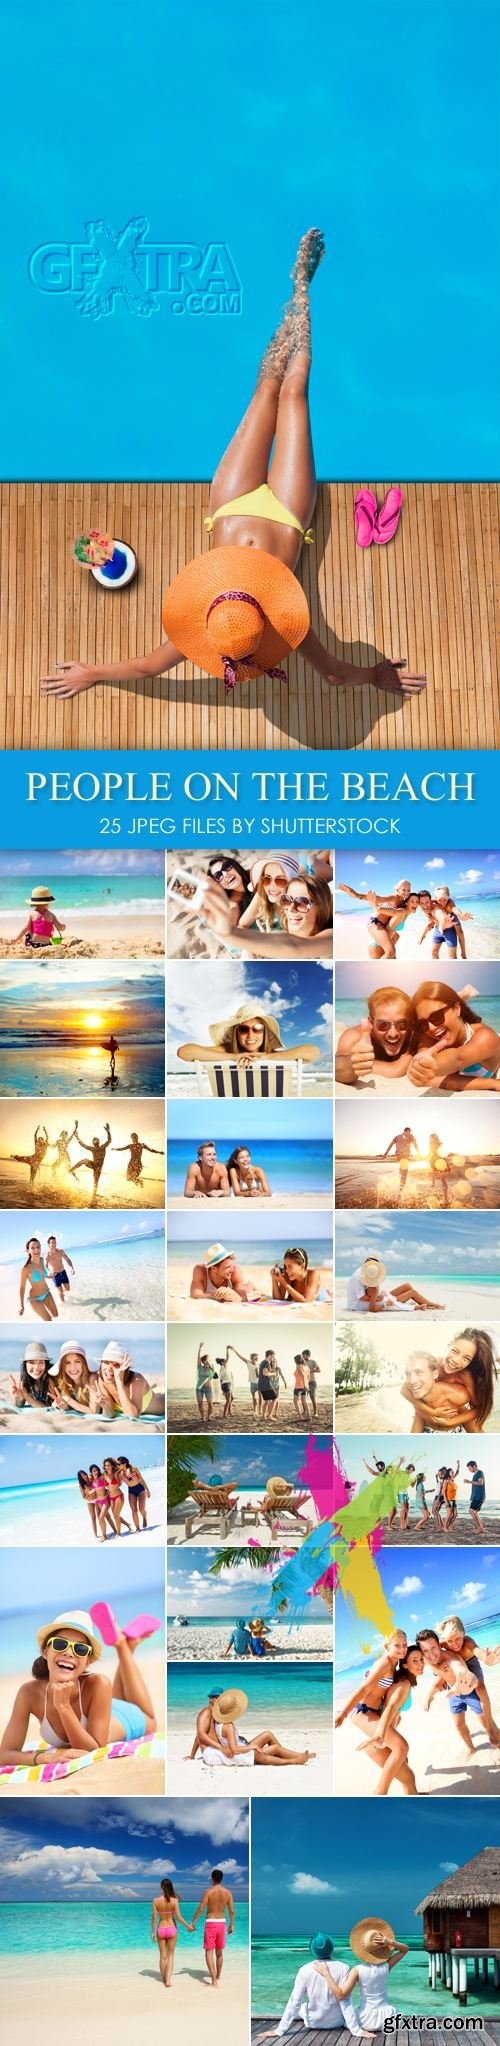 Stock Photo - People on the Beach